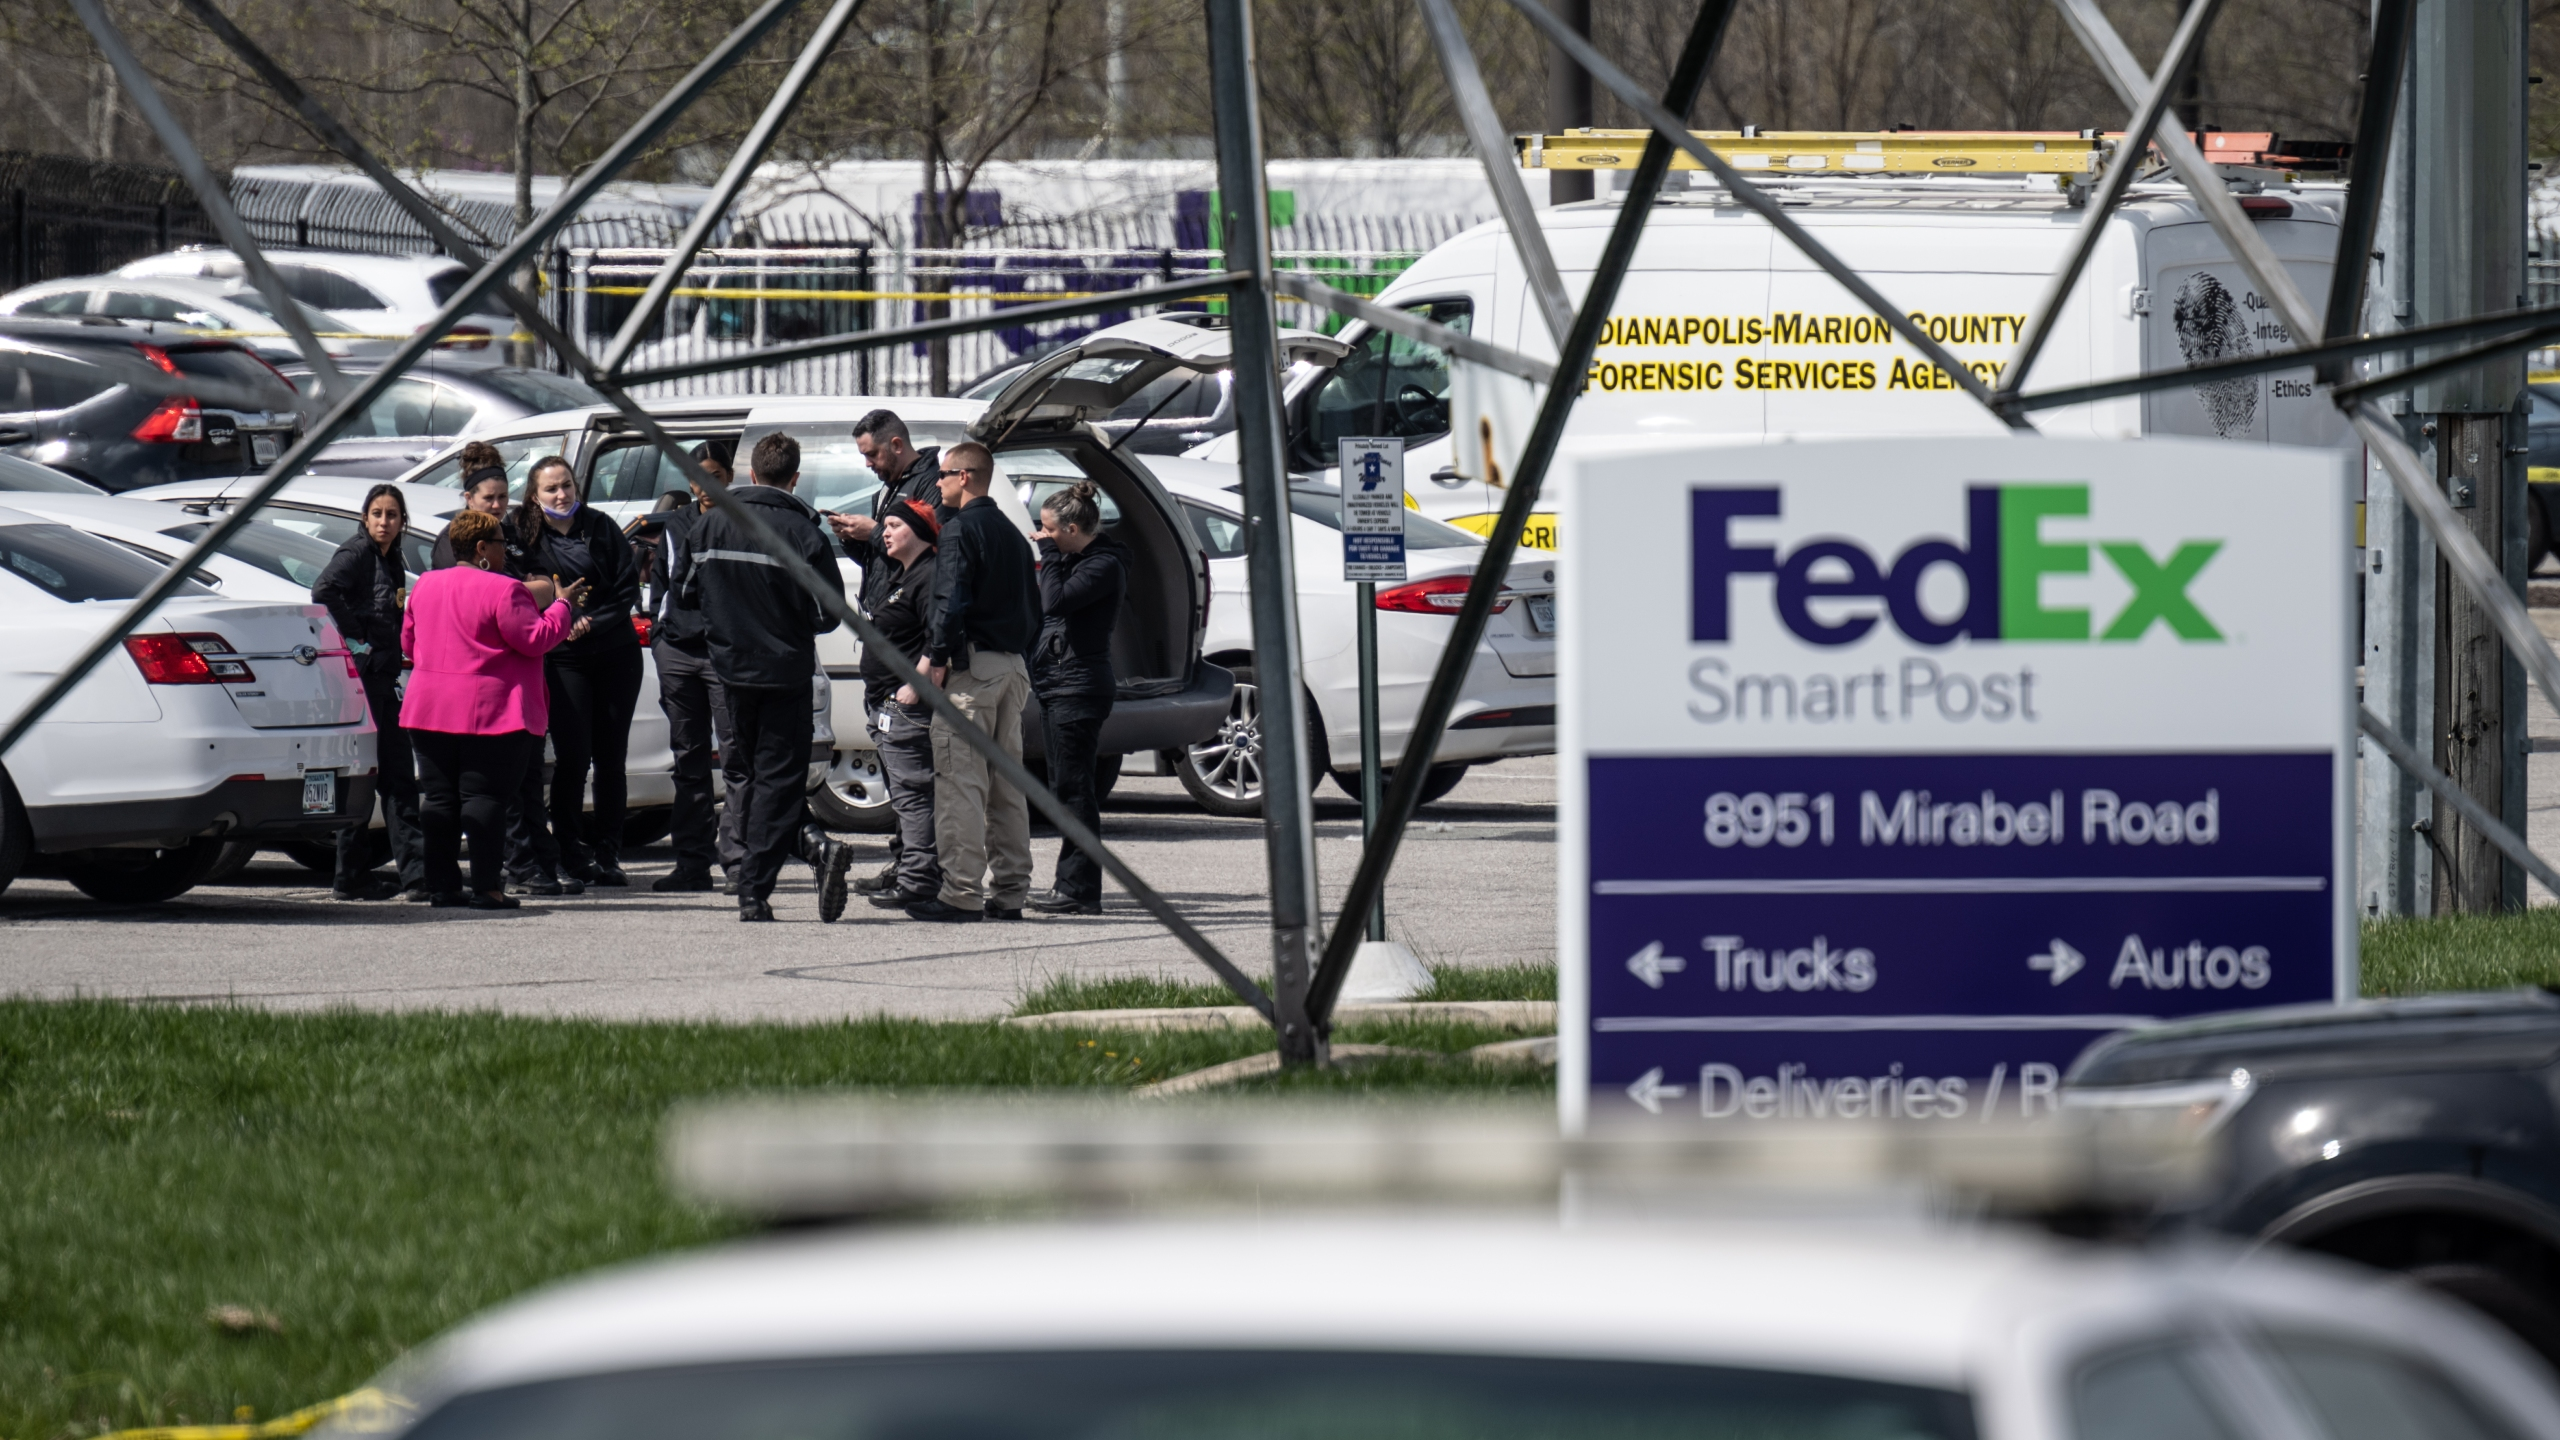 FedEx shooting renews push for more mental health services